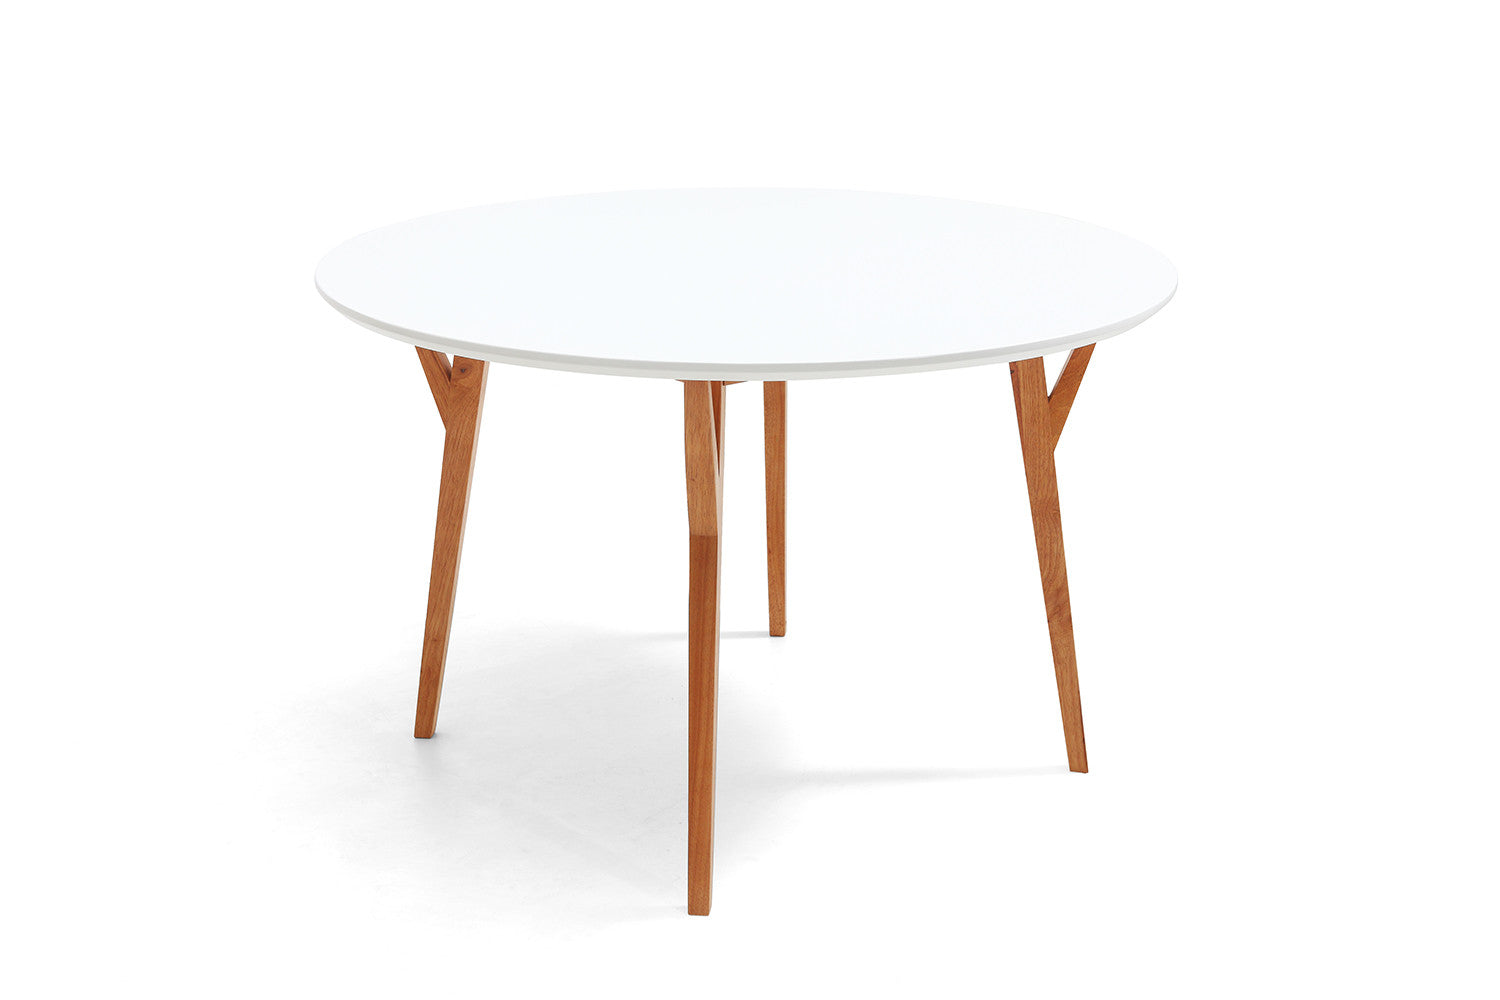 Table de salle manger ronde design scandinave moesa for Table de salle a manger design bois